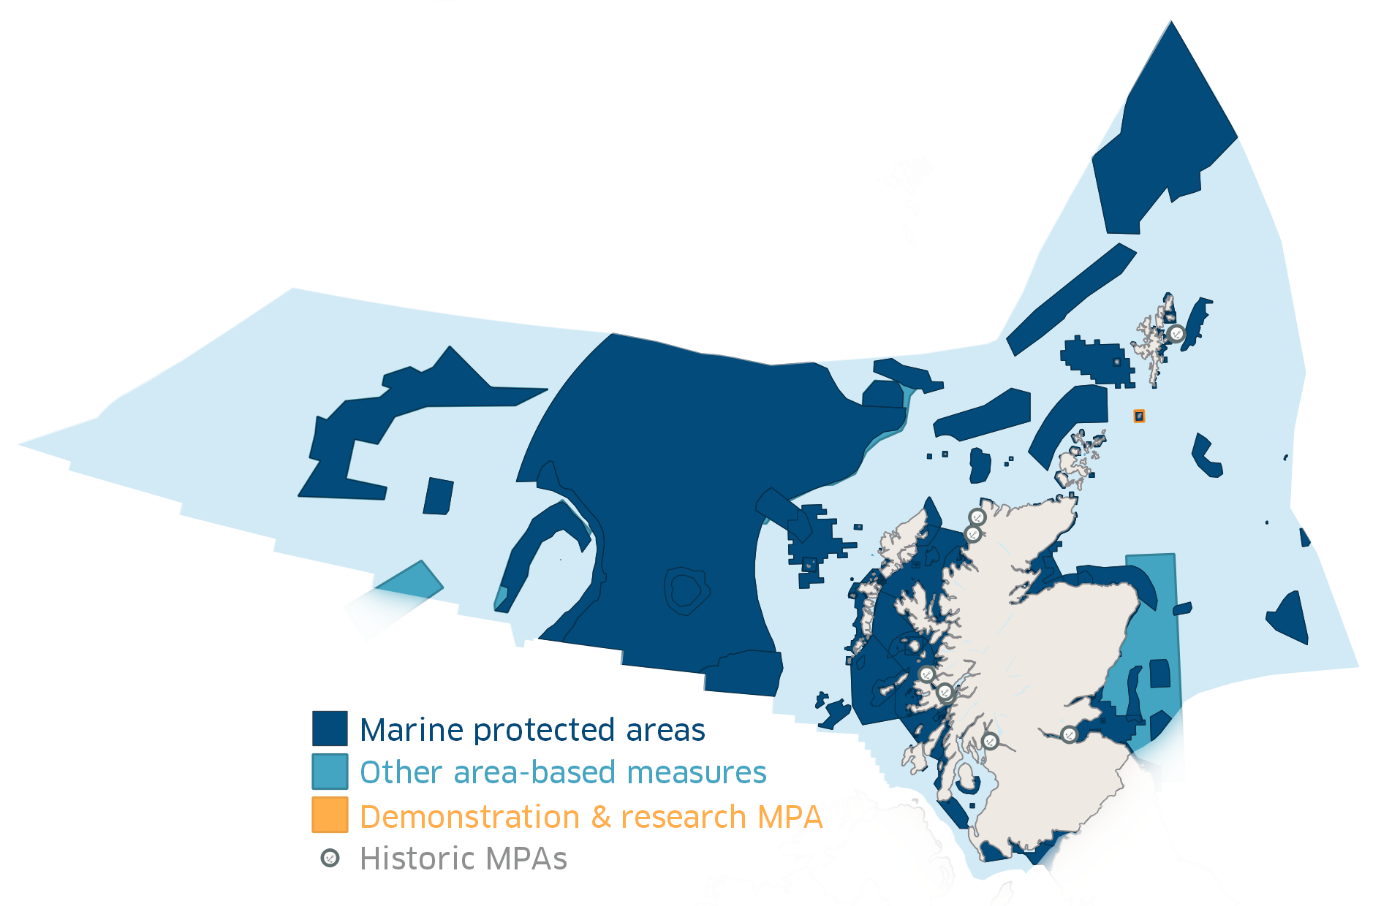 Scotland's marine protected areas now cover 37% of Scotland's seas.